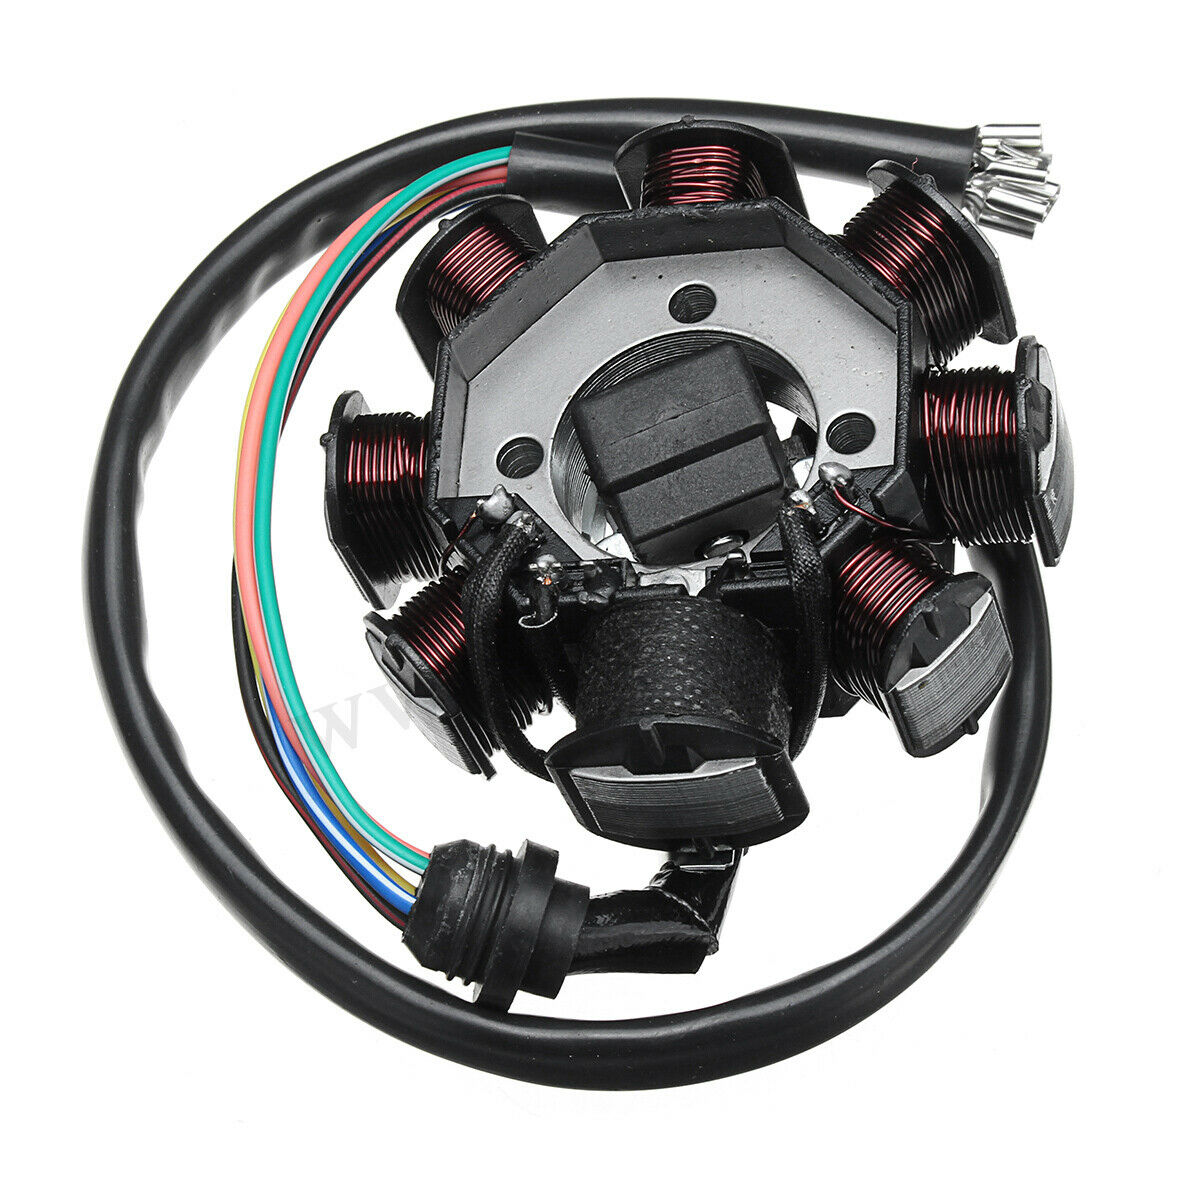 Beach ATV Wiring harness Car Accessories Electric Wiring Harness Wire Loom Stator Full Kit For ATV QUAD 150/200/250CC enlarge